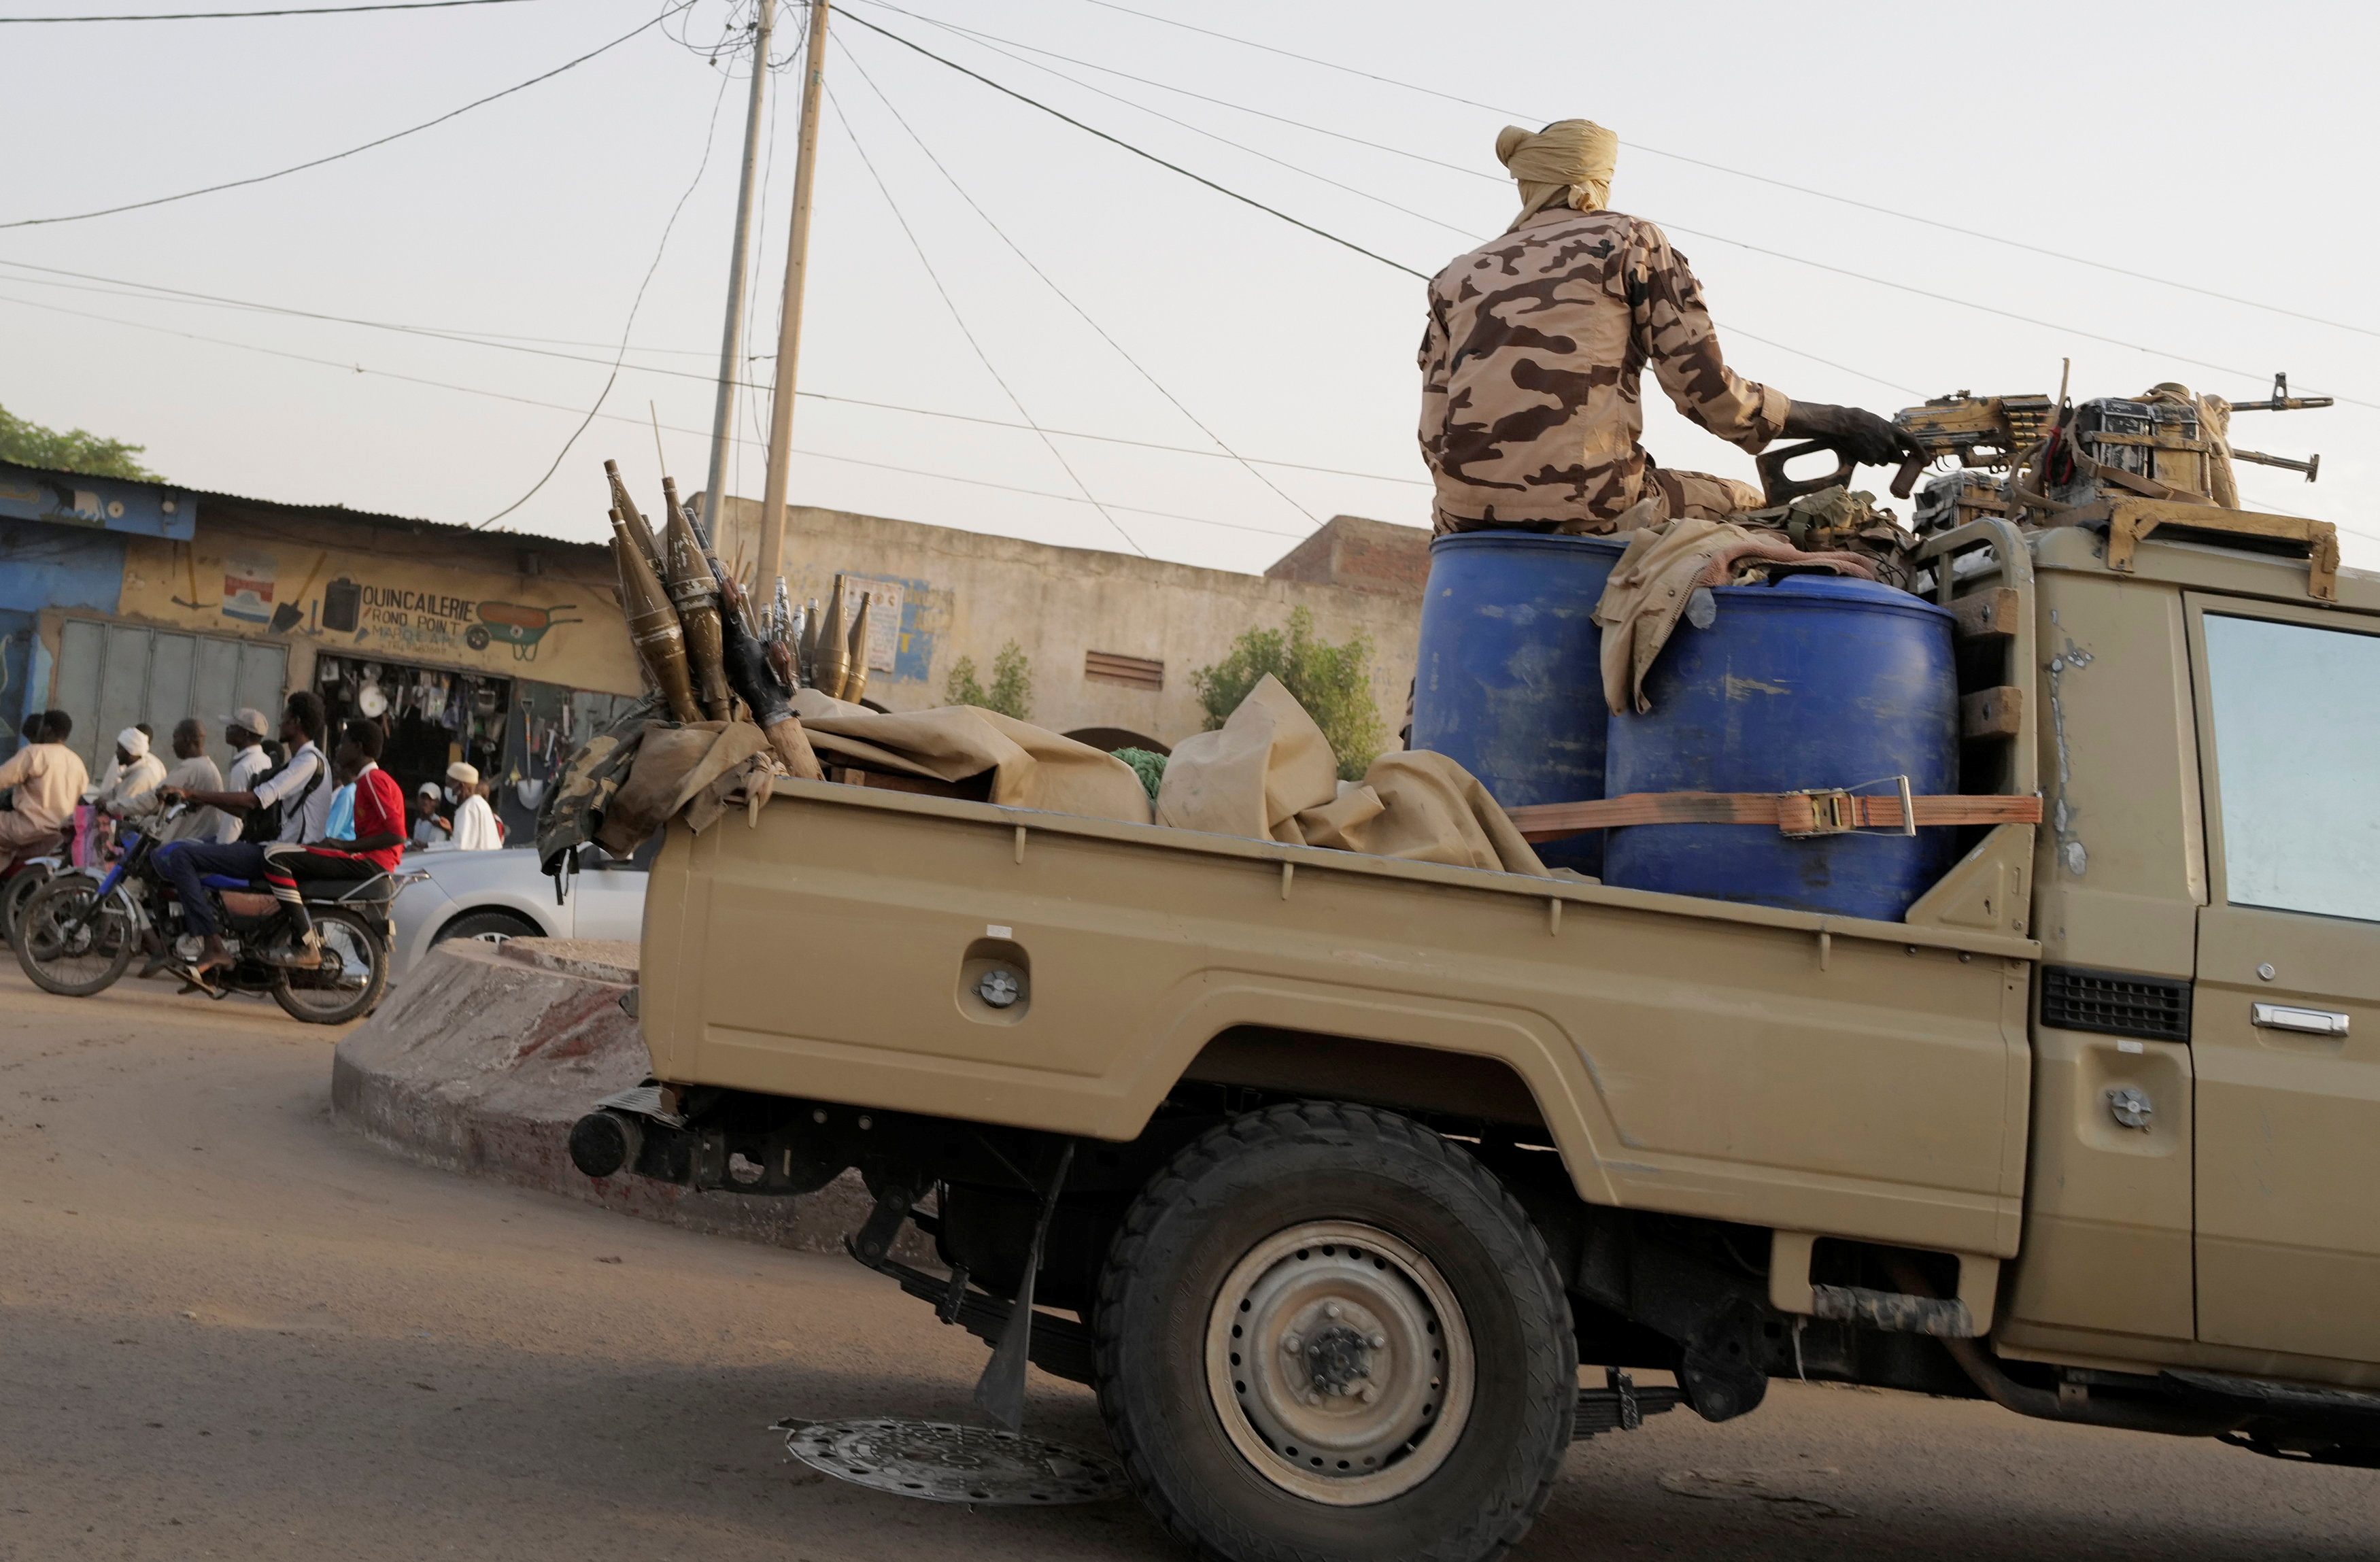 Members of the security forces drive along the market following the battlefield death of President Idriss Deby in N'Djamena, Chad April 26, 2021. REUTERS/Zohra Bensemra